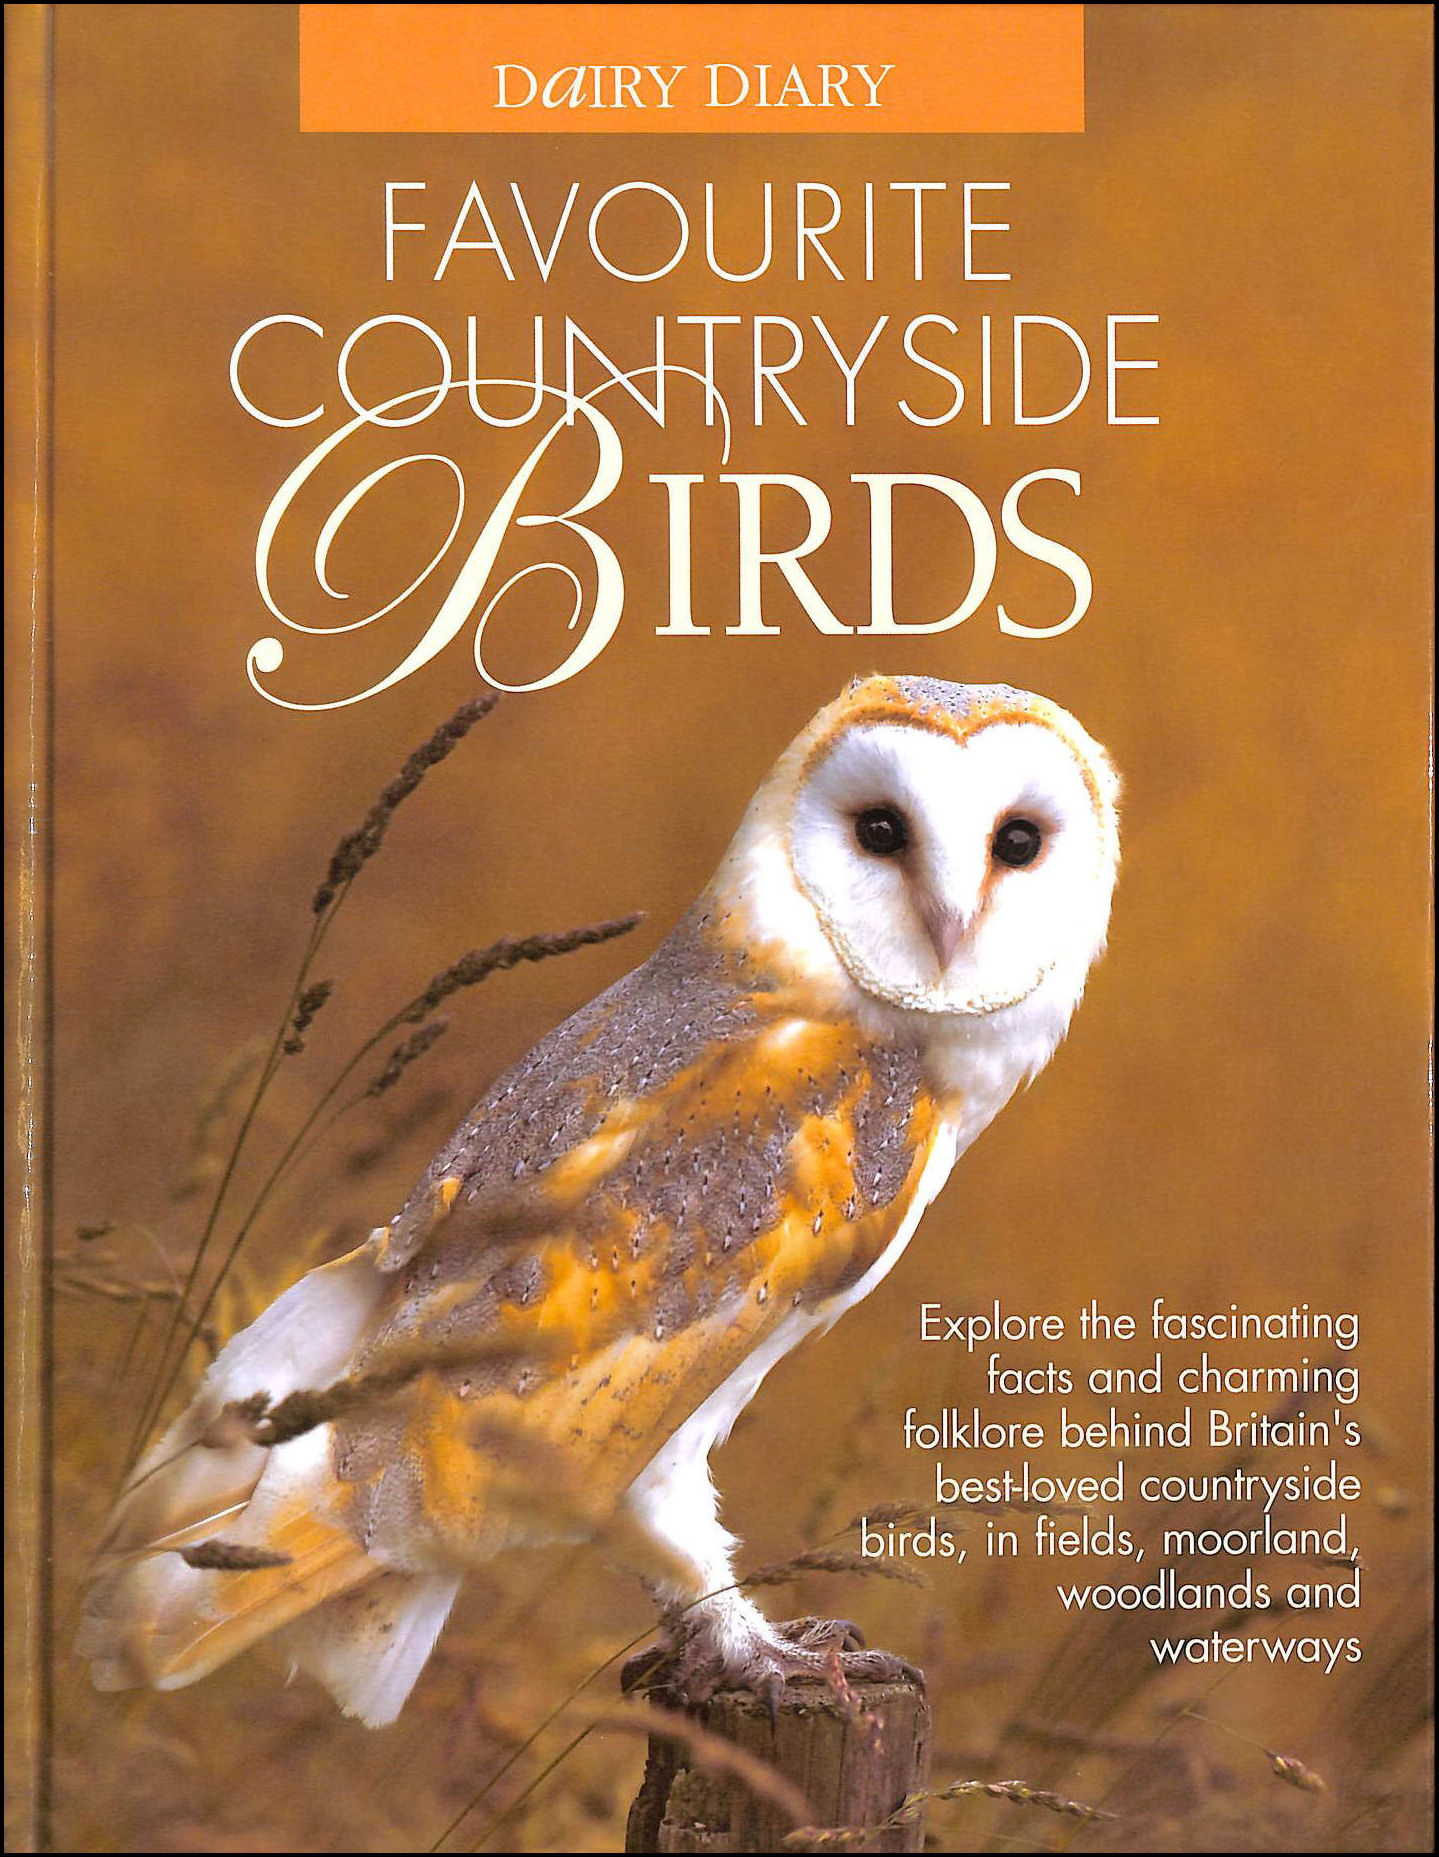 Image for Dairy Diary Favourite Countryside Birds